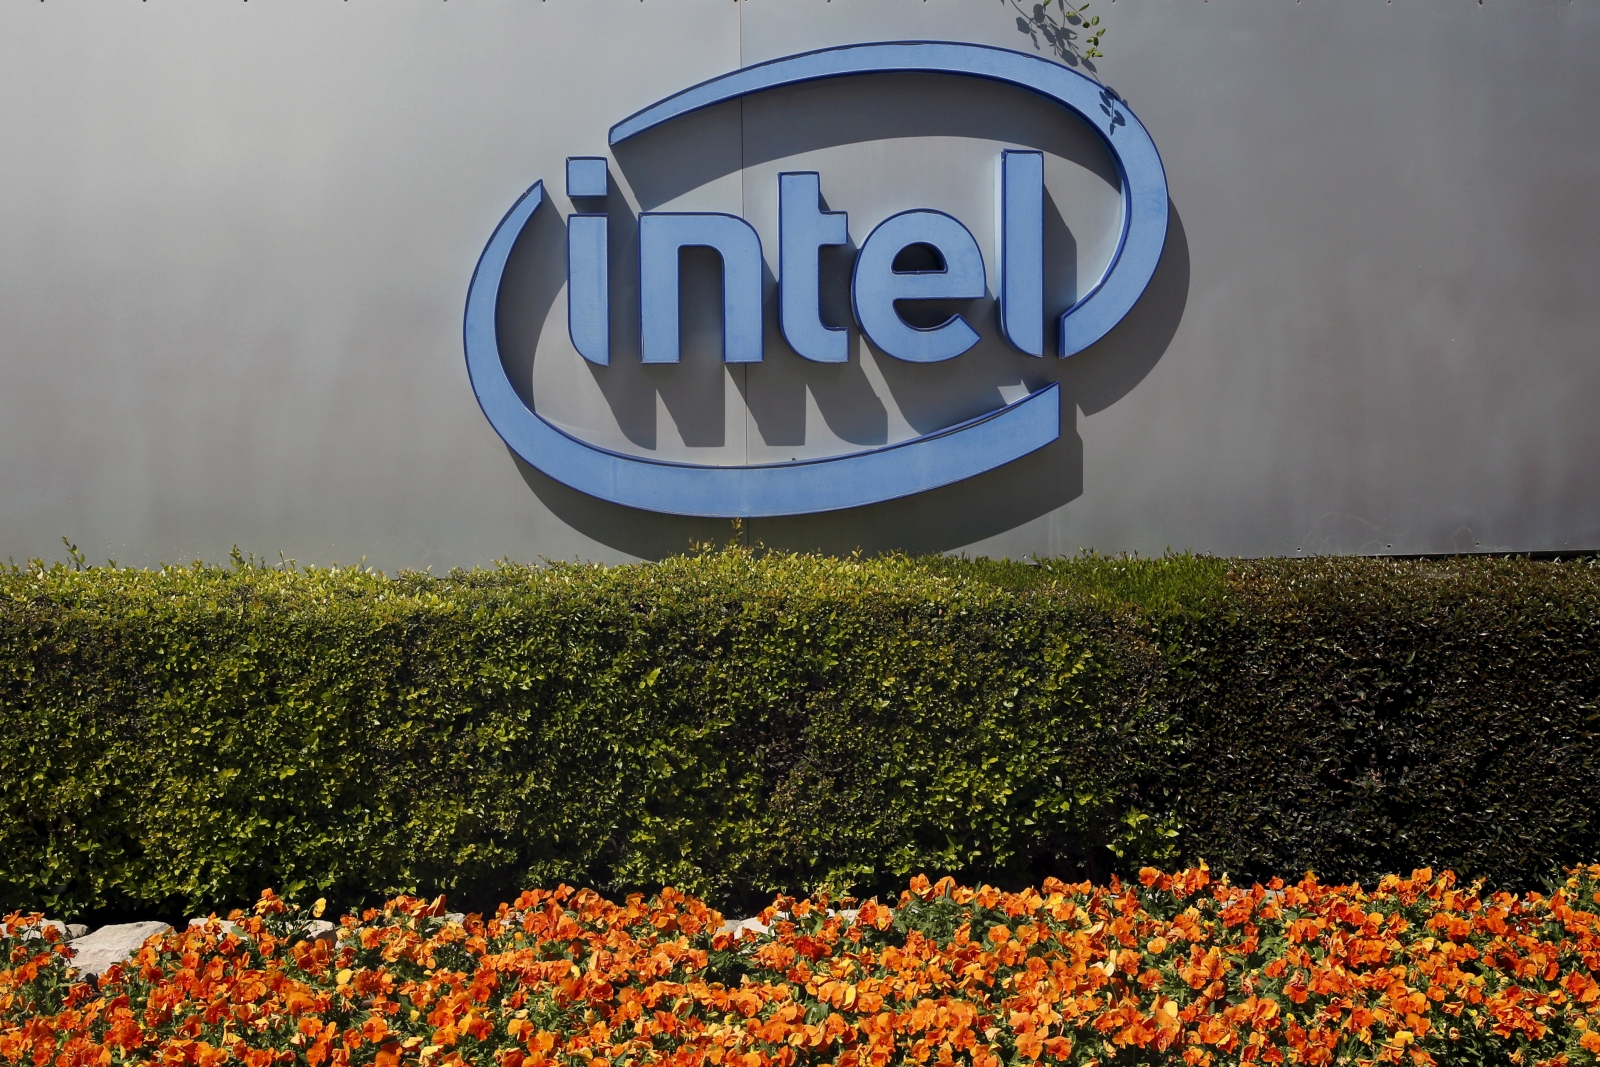 Intel to buy Mobileye for $15 billion class=